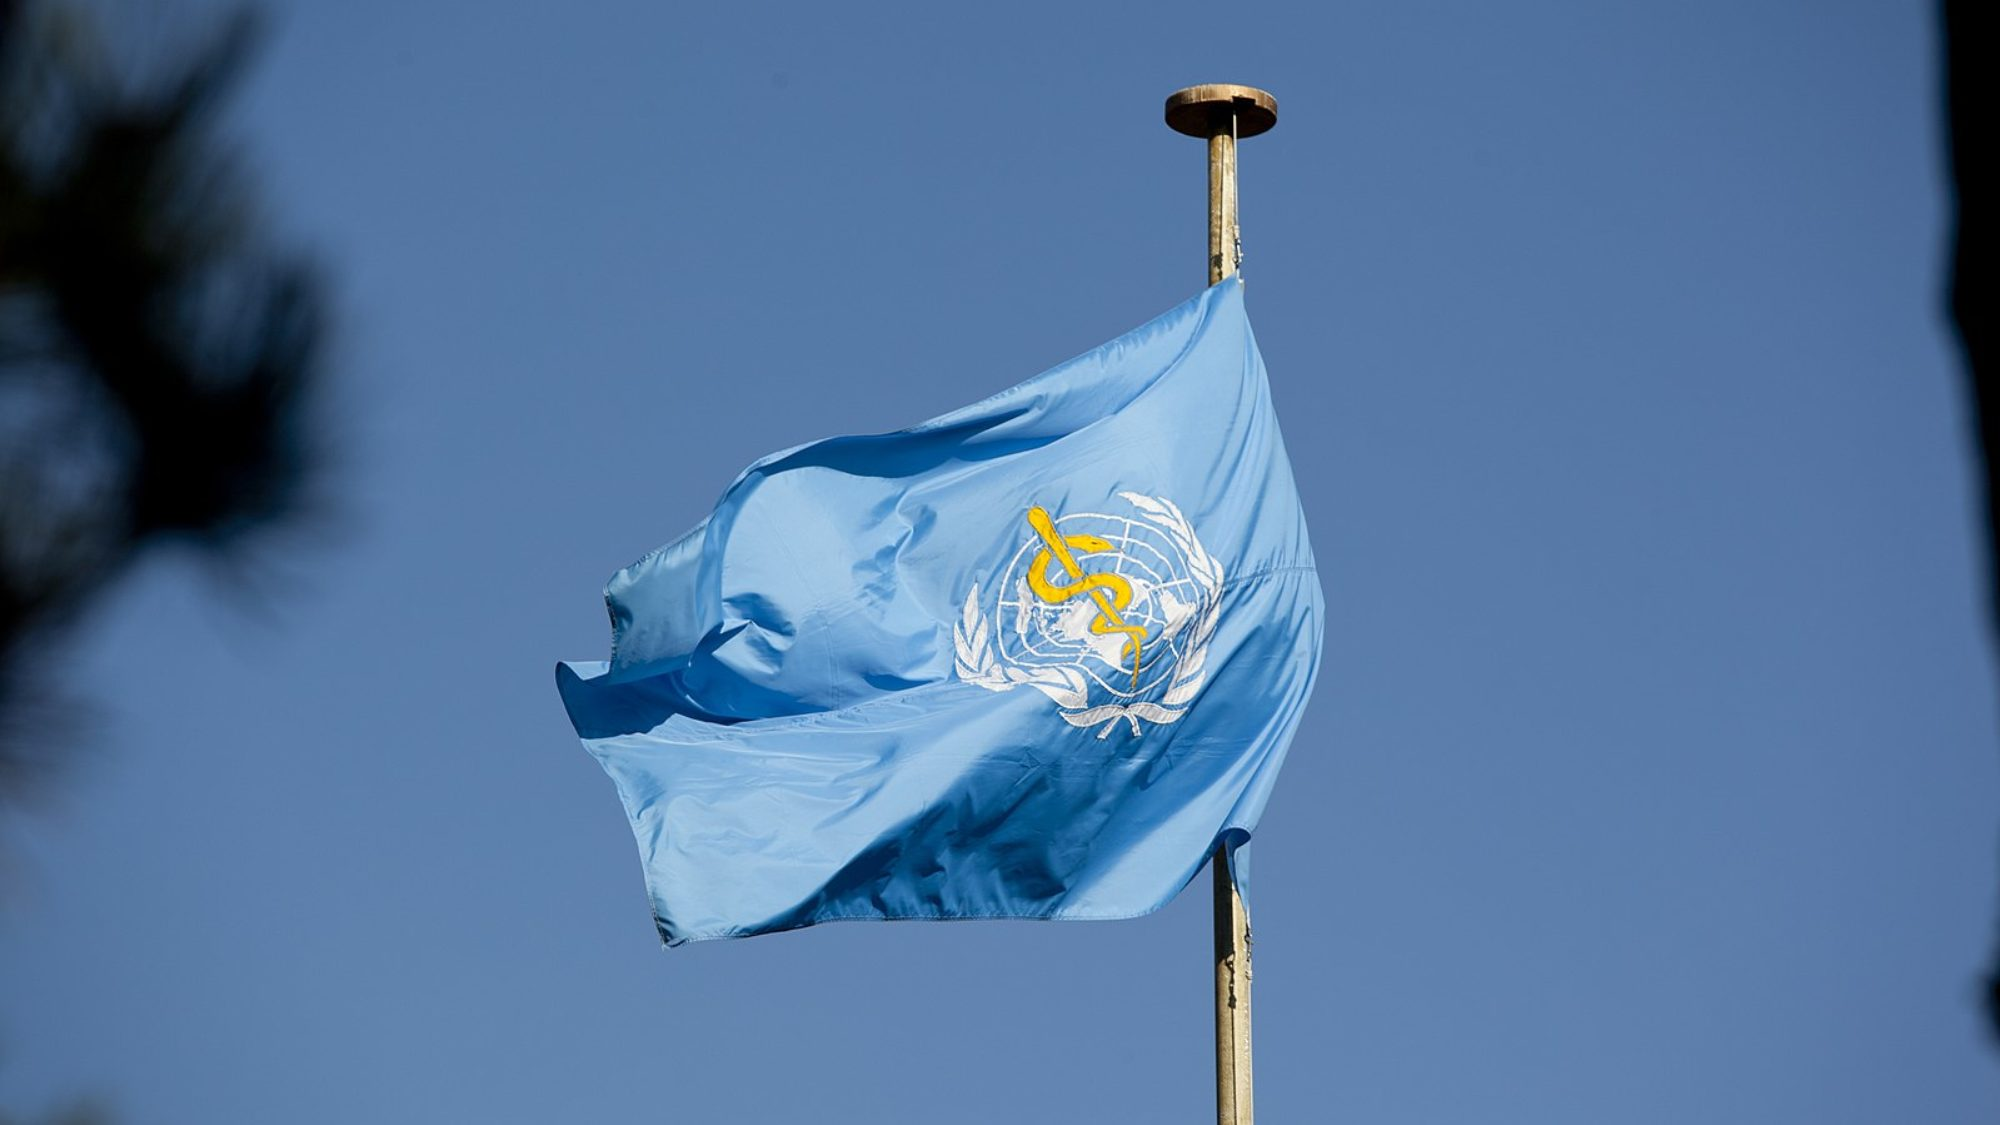 The flag of the World Health Organization (WHO) flutters on a flagpole.